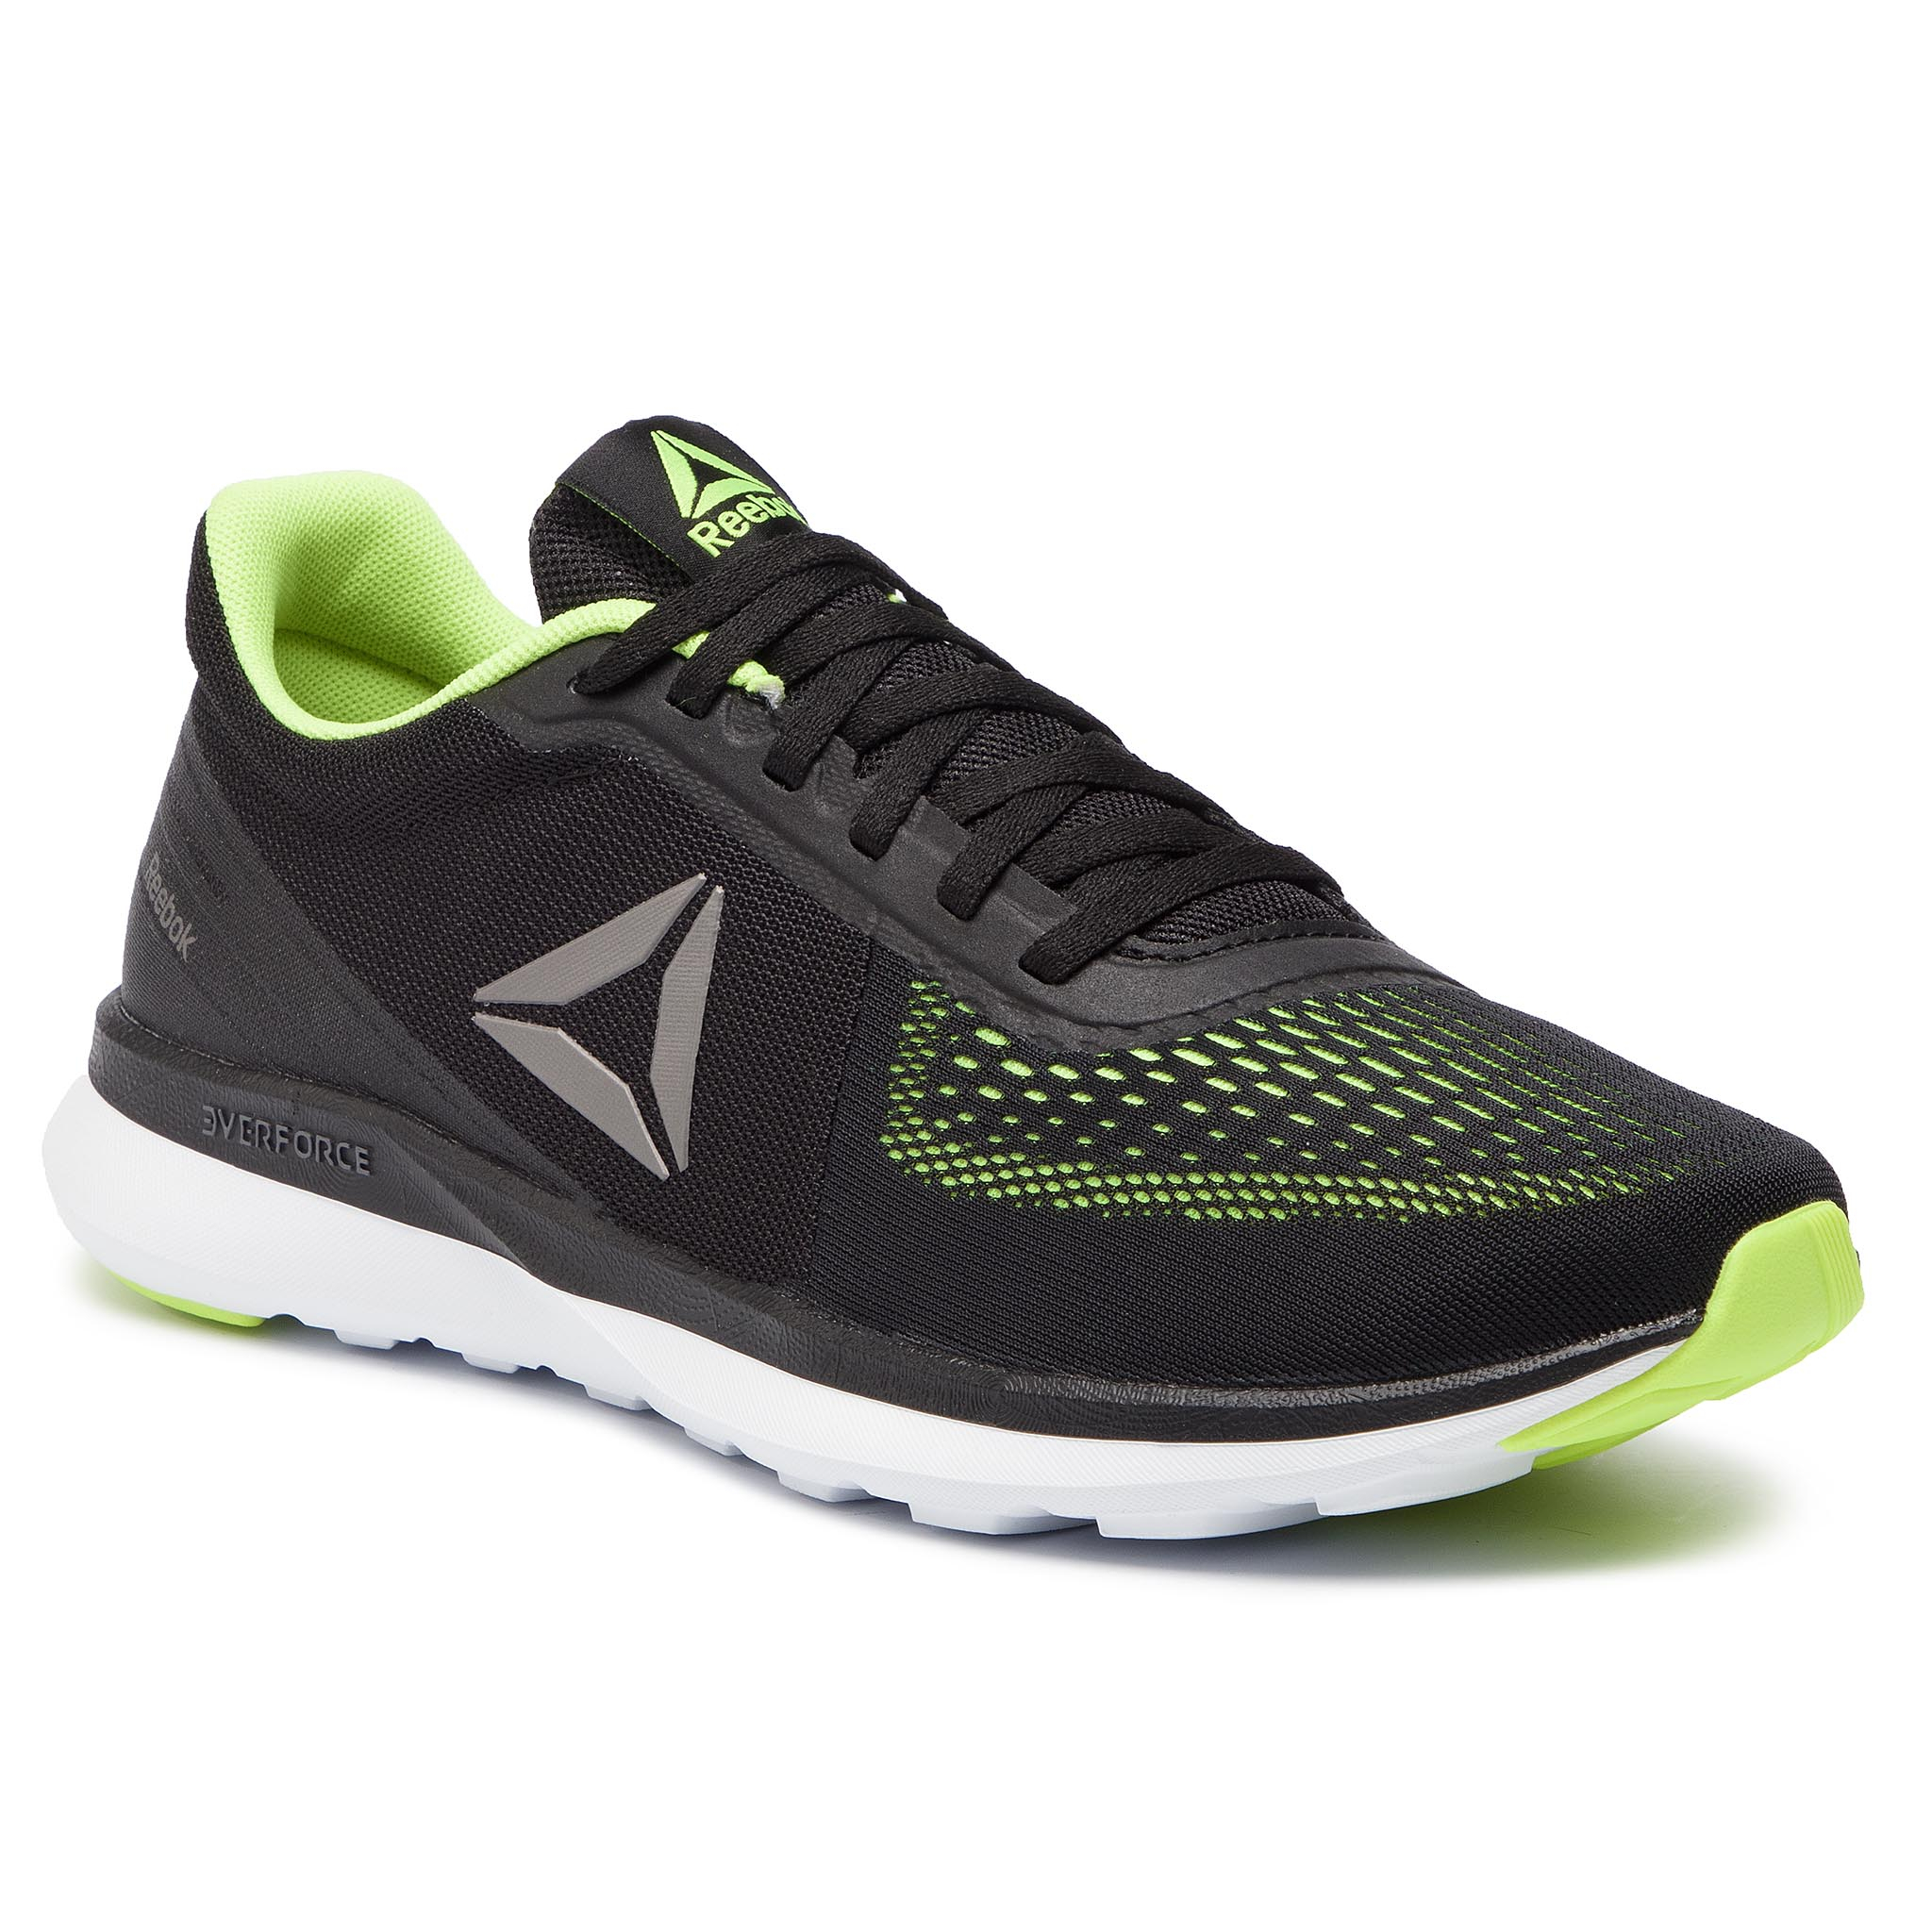 save off 42528 ebbb6 Shoes Reebok Everforce Breeze CN6602 Black Neon Lime White Pwt